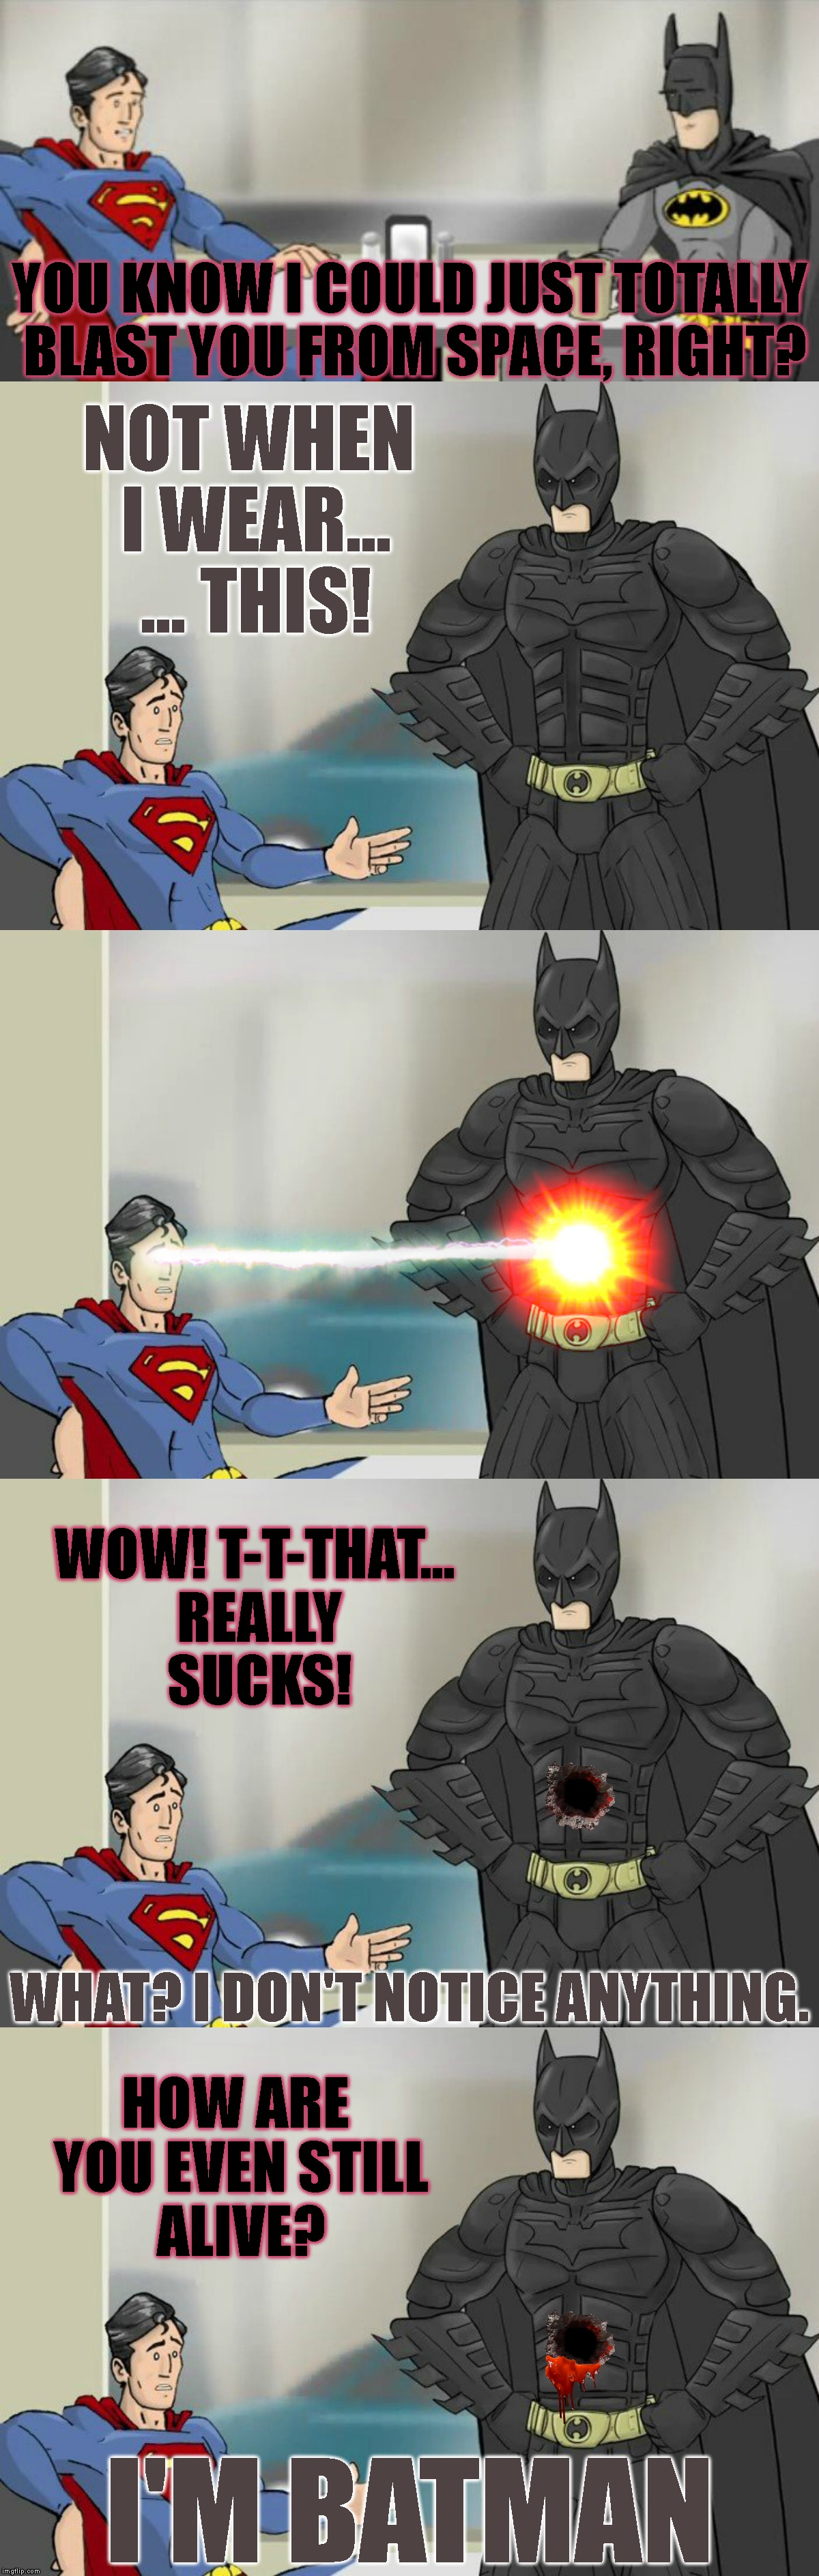 Always Prepared | YOU KNOW I COULD JUST TOTALLY BLAST YOU FROM SPACE, RIGHT? I'M BATMAN NOT WHEN I WEAR... ... THIS! WOW! T-T-THAT... REALLY SUCKS! HOW ARE YO | image tagged in batman,superman,i'm batman,bragging,fail,epic fail | made w/ Imgflip meme maker